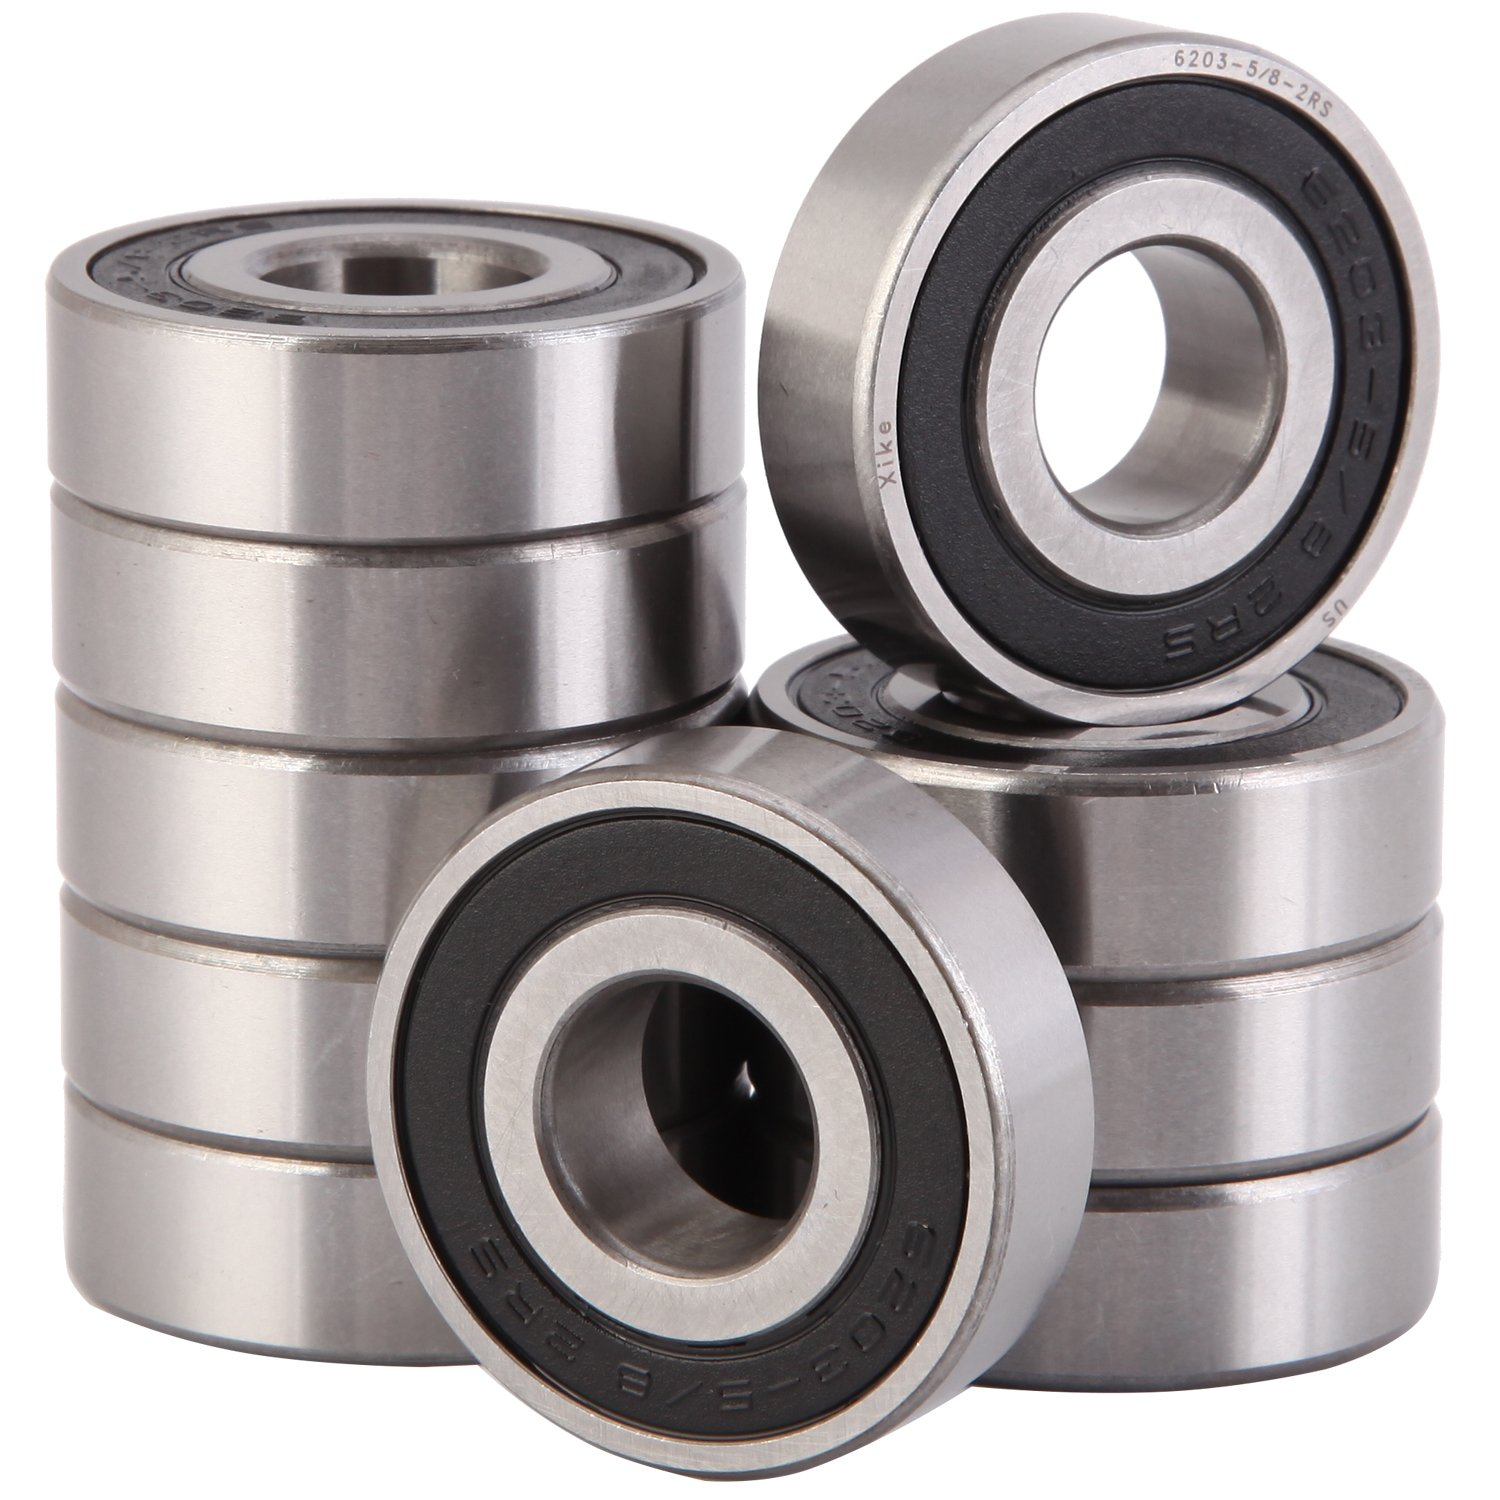 Double Seal and Pre-Lubricated Stable Performance and Cost-Effective 4 Pack 6204-2RS Bearings 20x47x14mm Deep Groove Ball Bearings